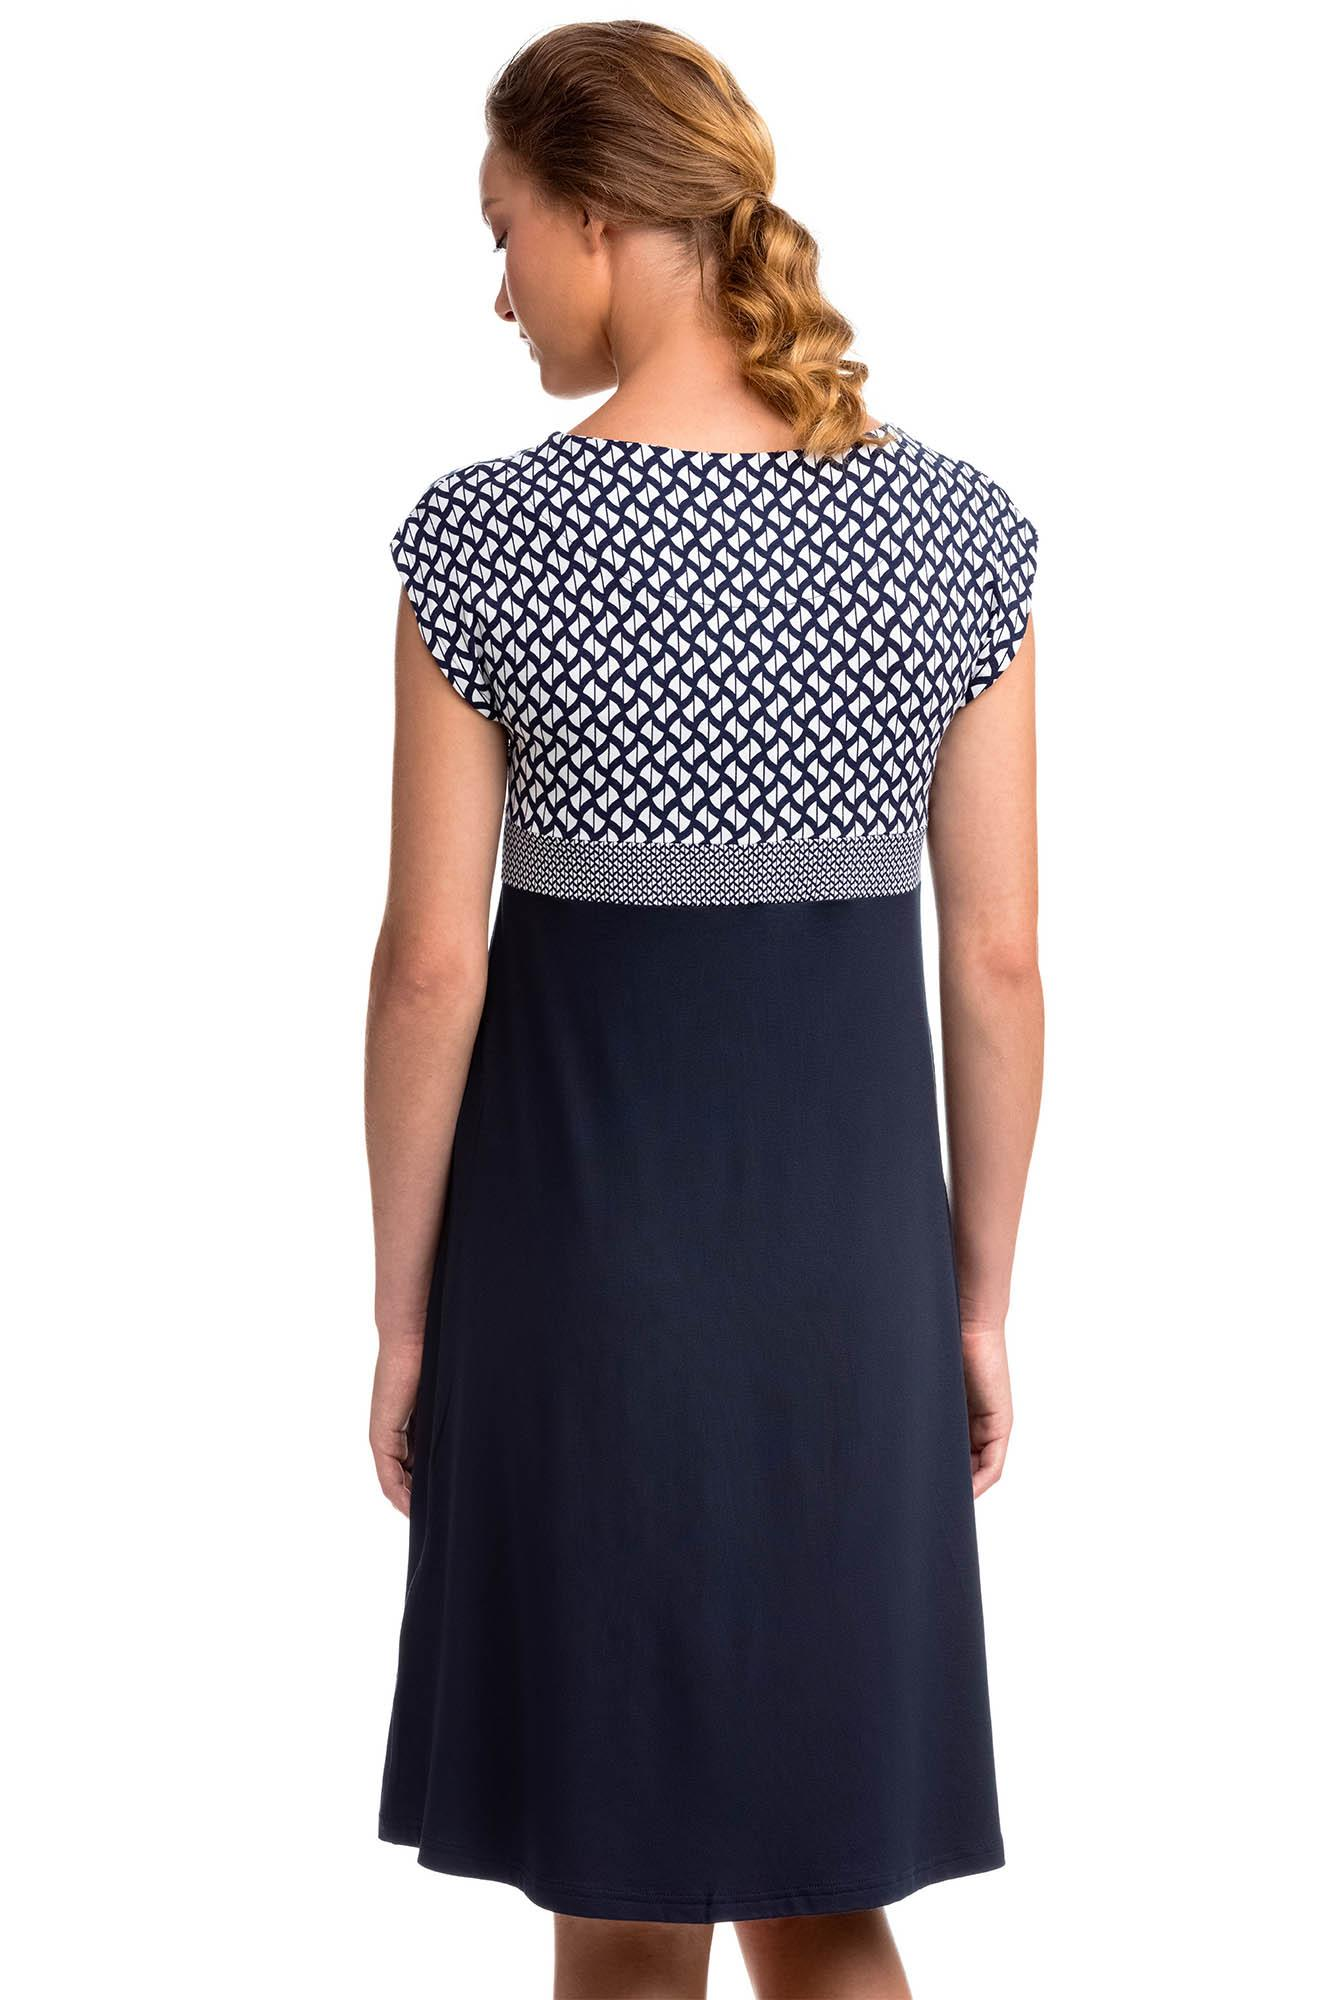 Short Sleeved A-Line Dress